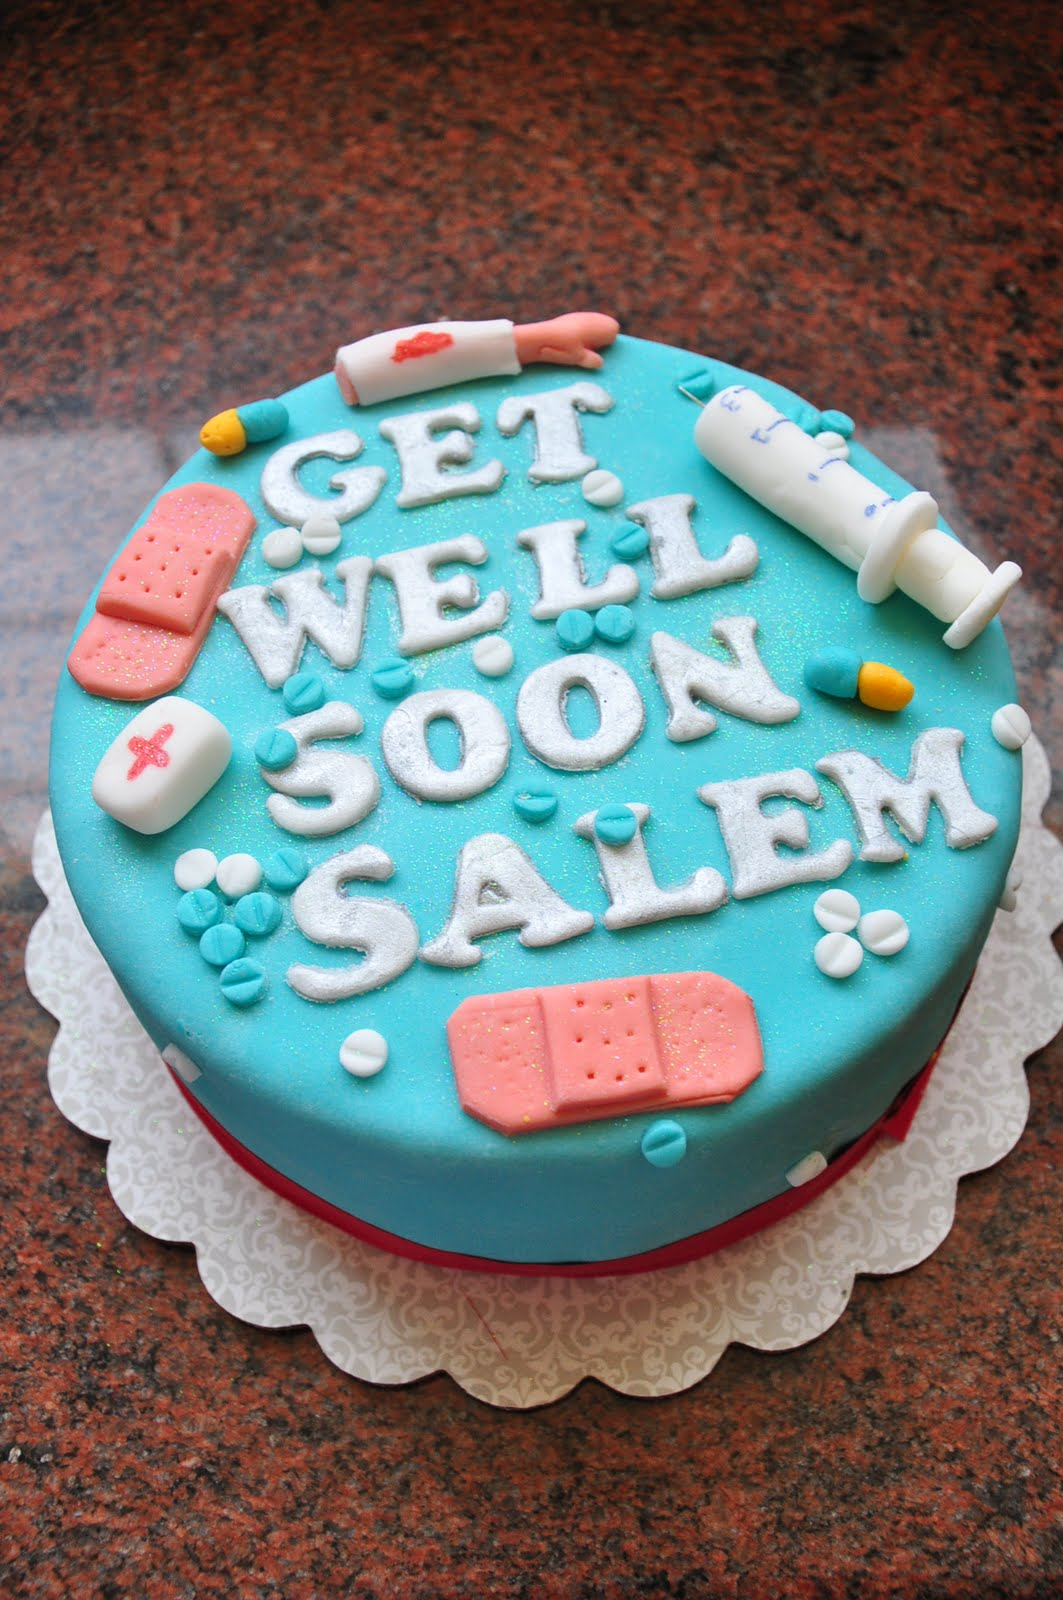 Reem S Cake Boutique Get Well Soon Cake